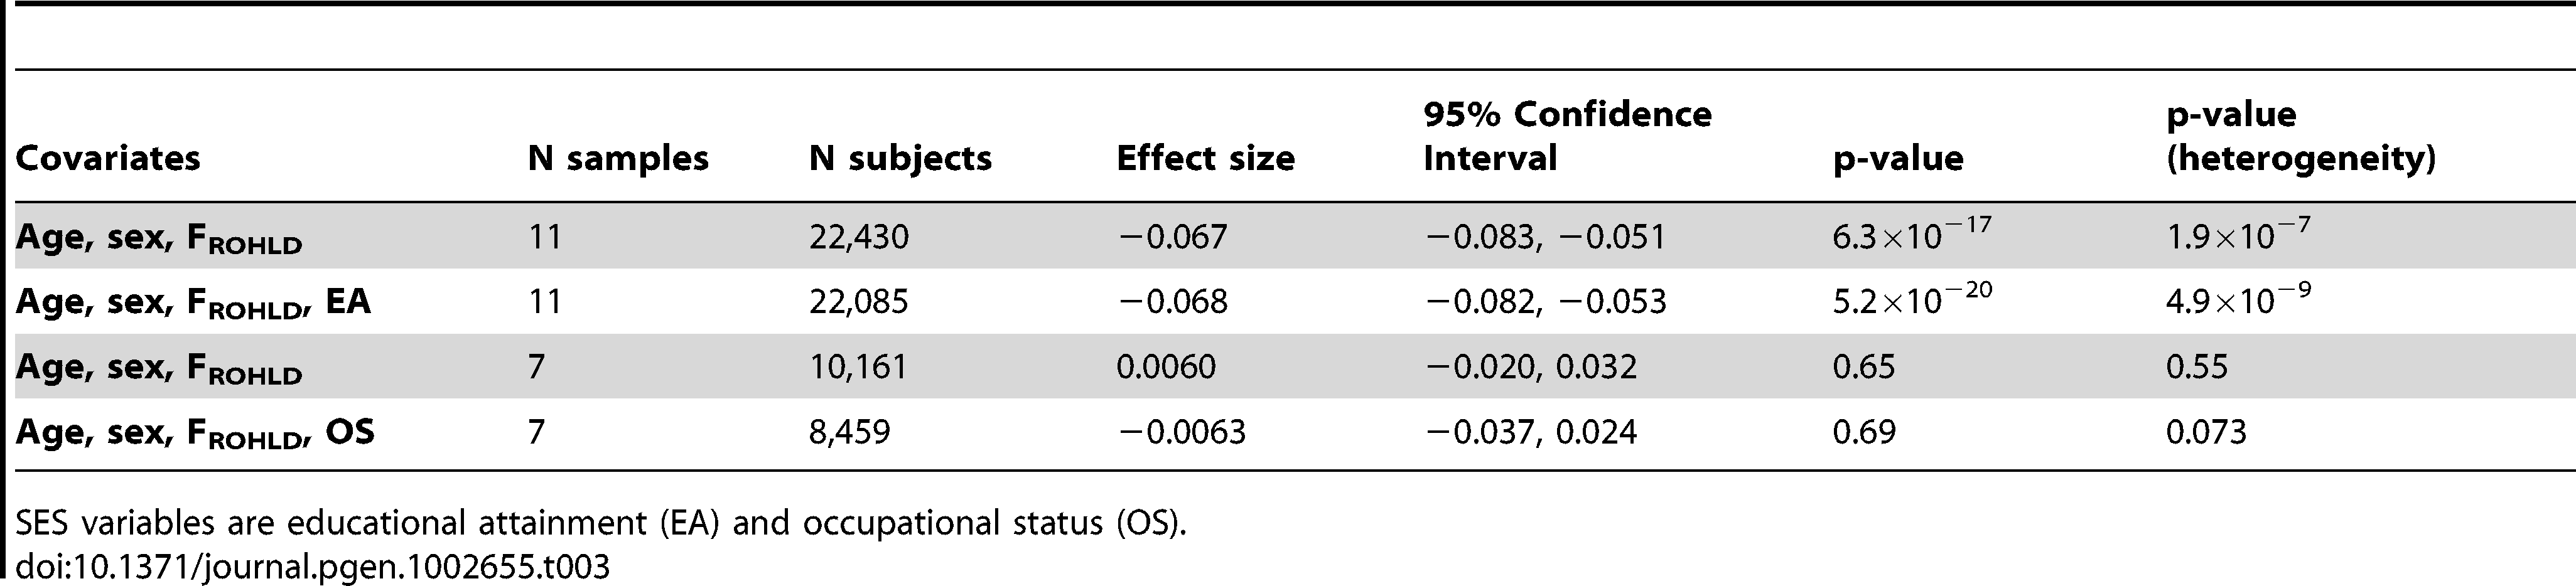 Meta-analysis assessing potential confounding of SES variables on the association between F<sub>ROHLD</sub> and height.